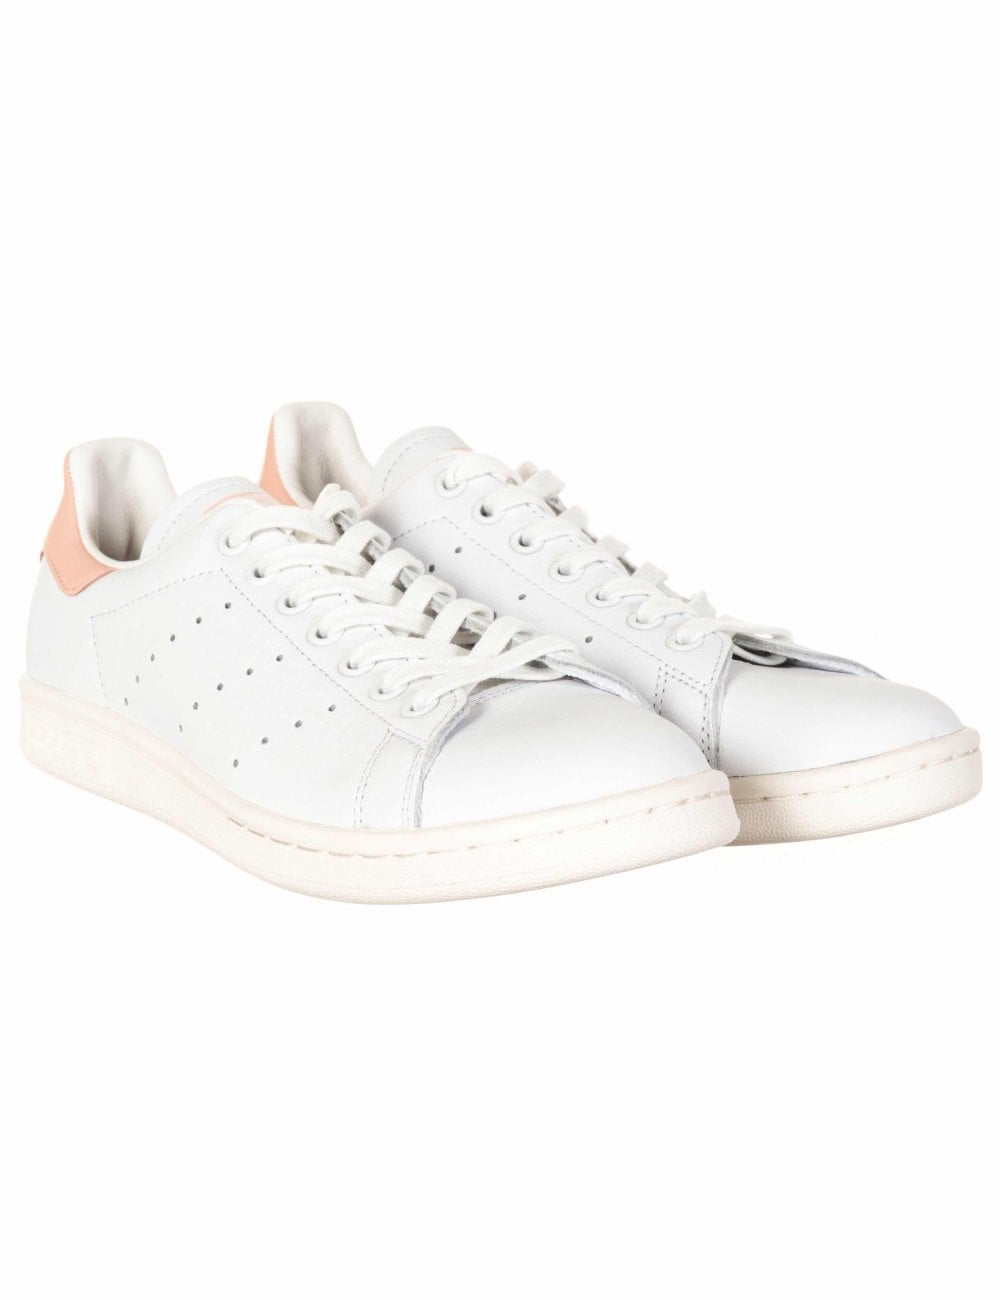 Caballo simpatía sucesor  Adidas Originals Stan Smith Trainers - White/Vapour Pink - Footwear from  Fat Buddha Store UK